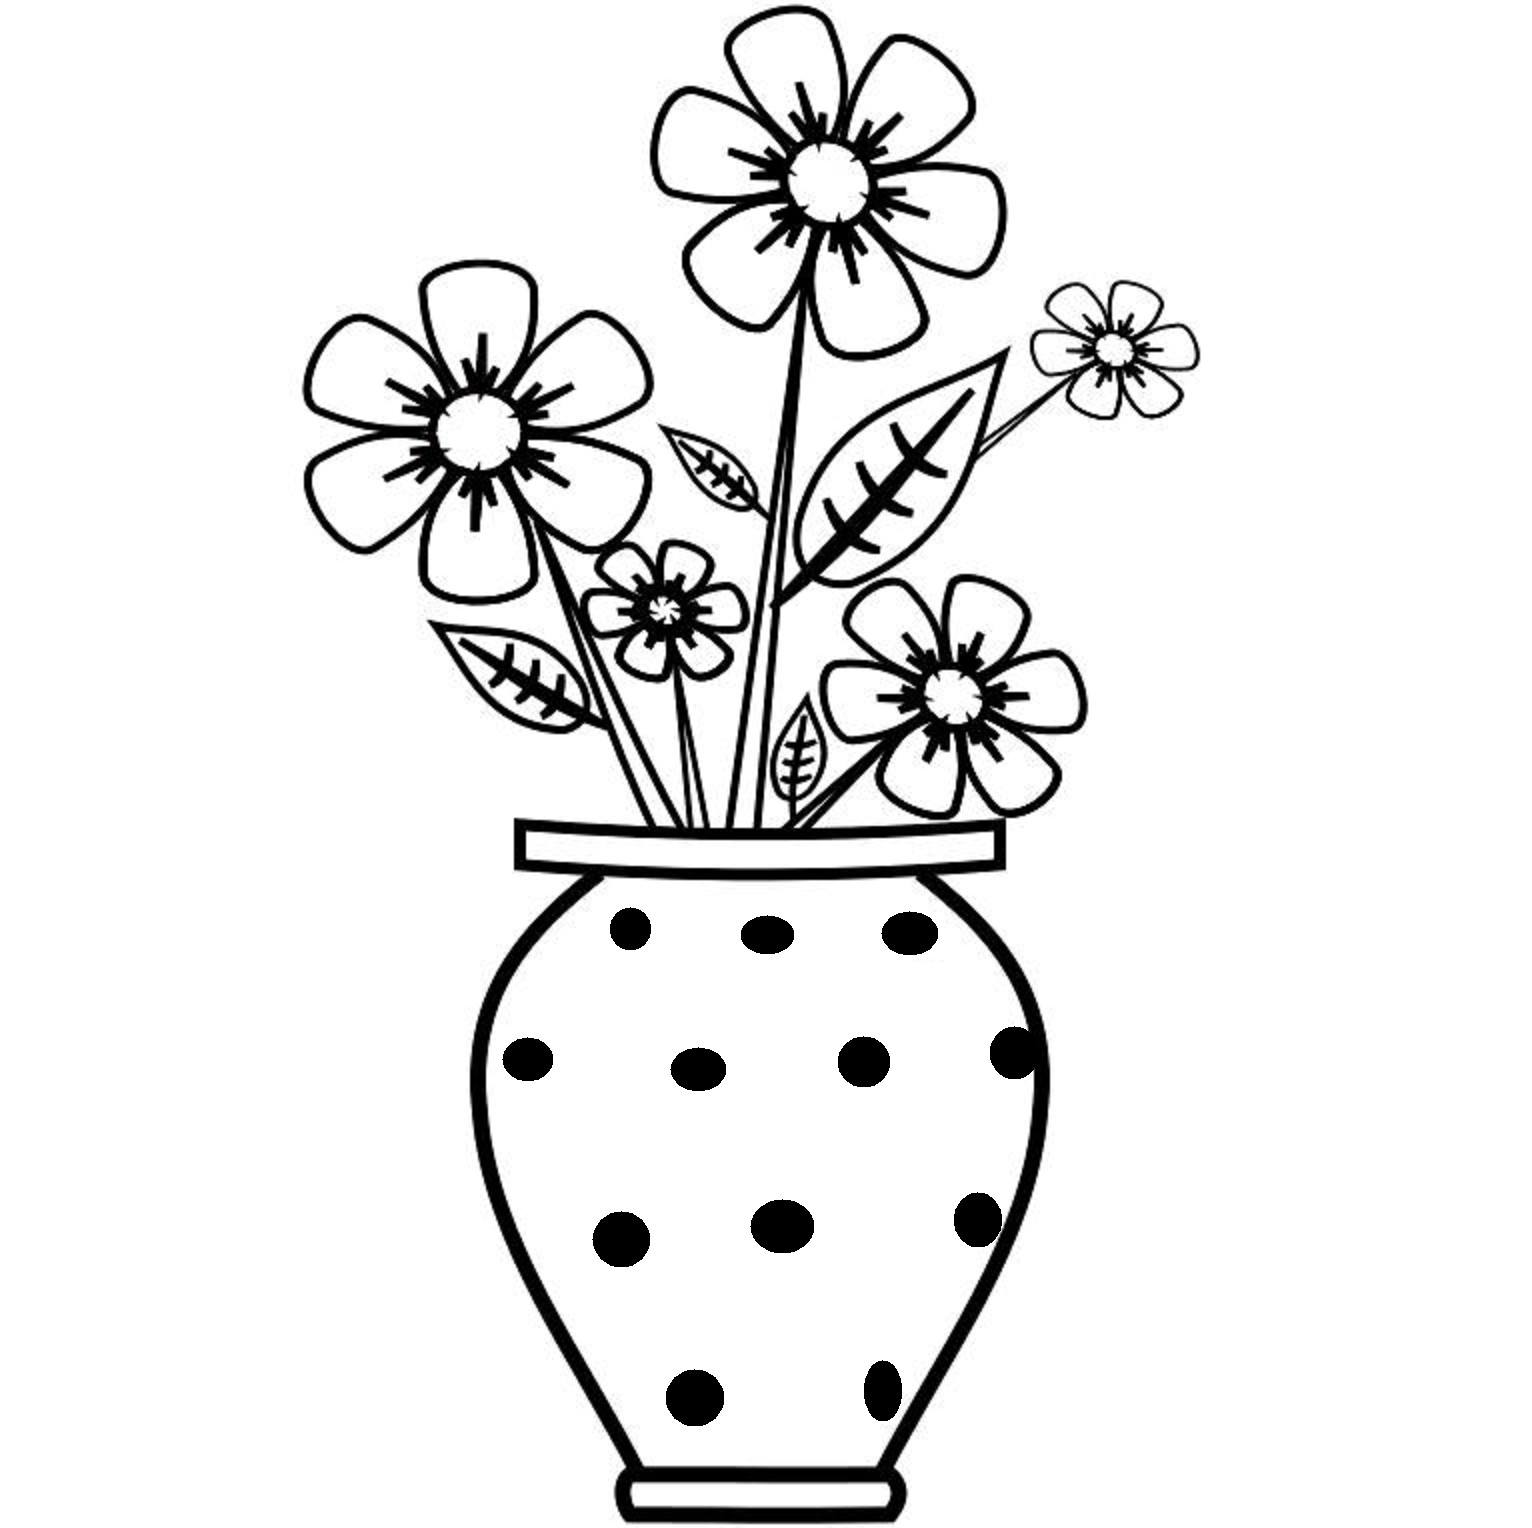 1532x1528 Photos Flower Vase Drawing For Kids Art Gallery Imagesh Vases Draw